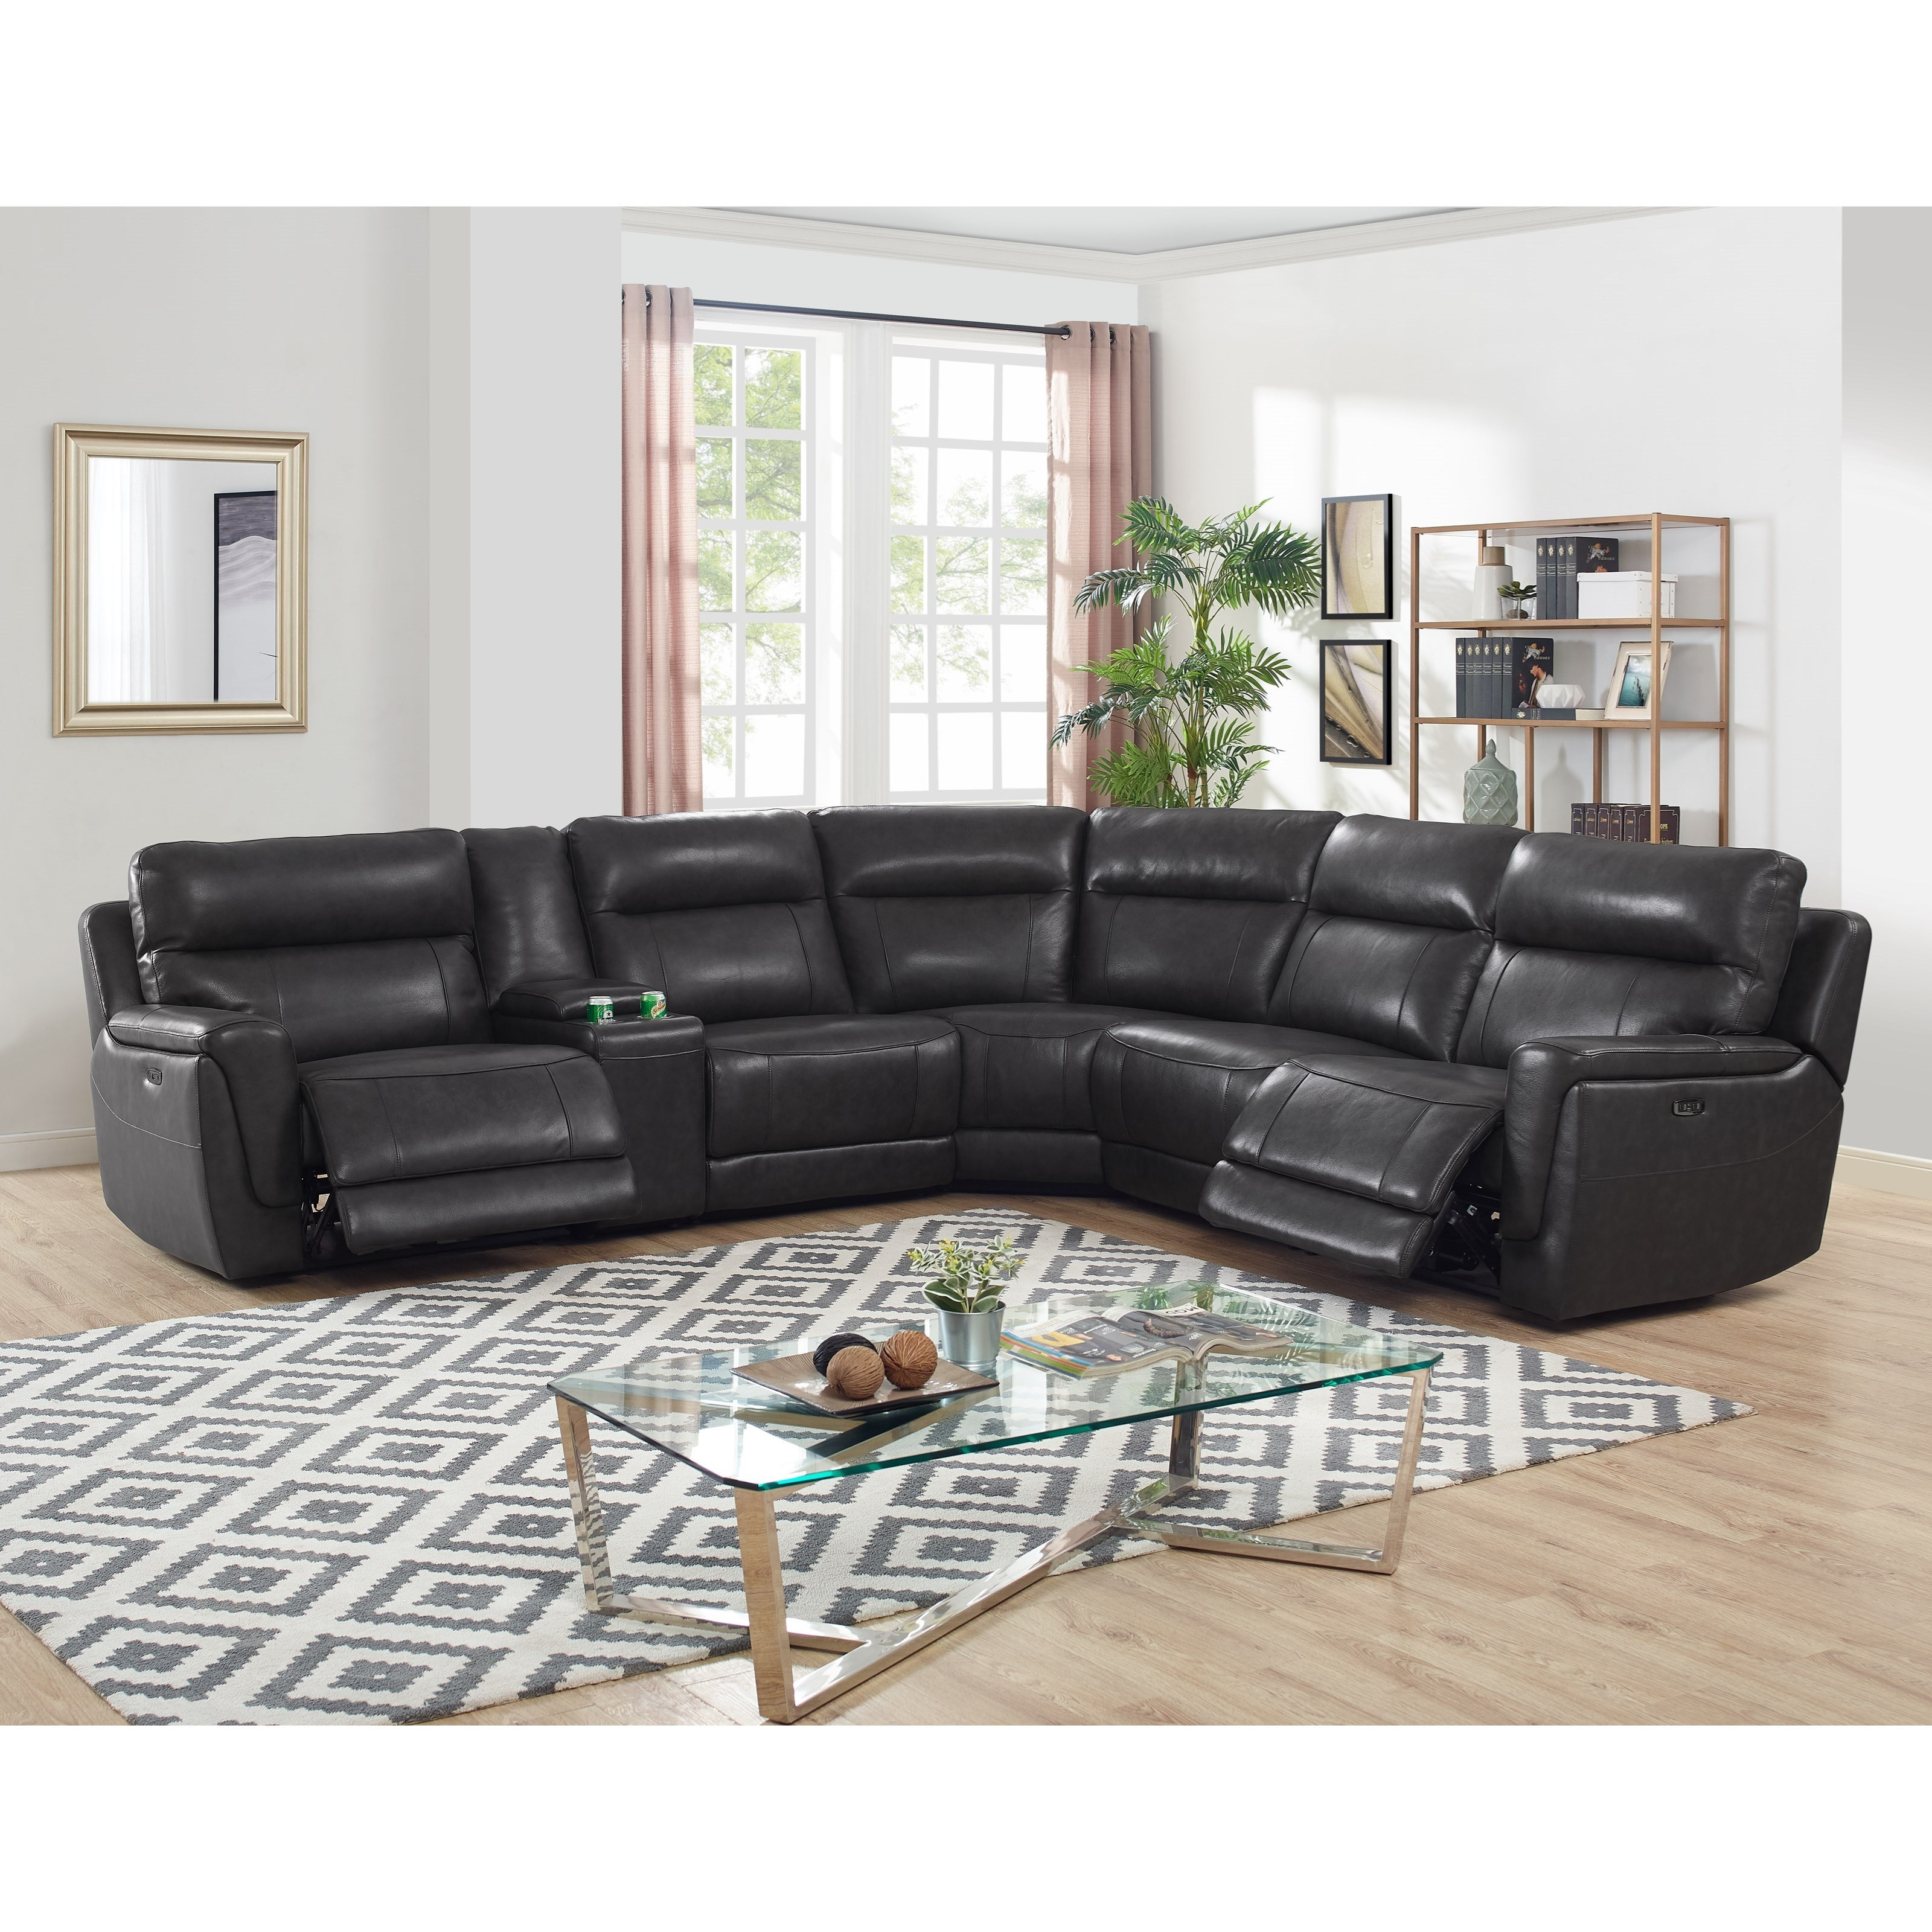 New Classic Zane 4 Seat Power Reclining Sectional Sofa